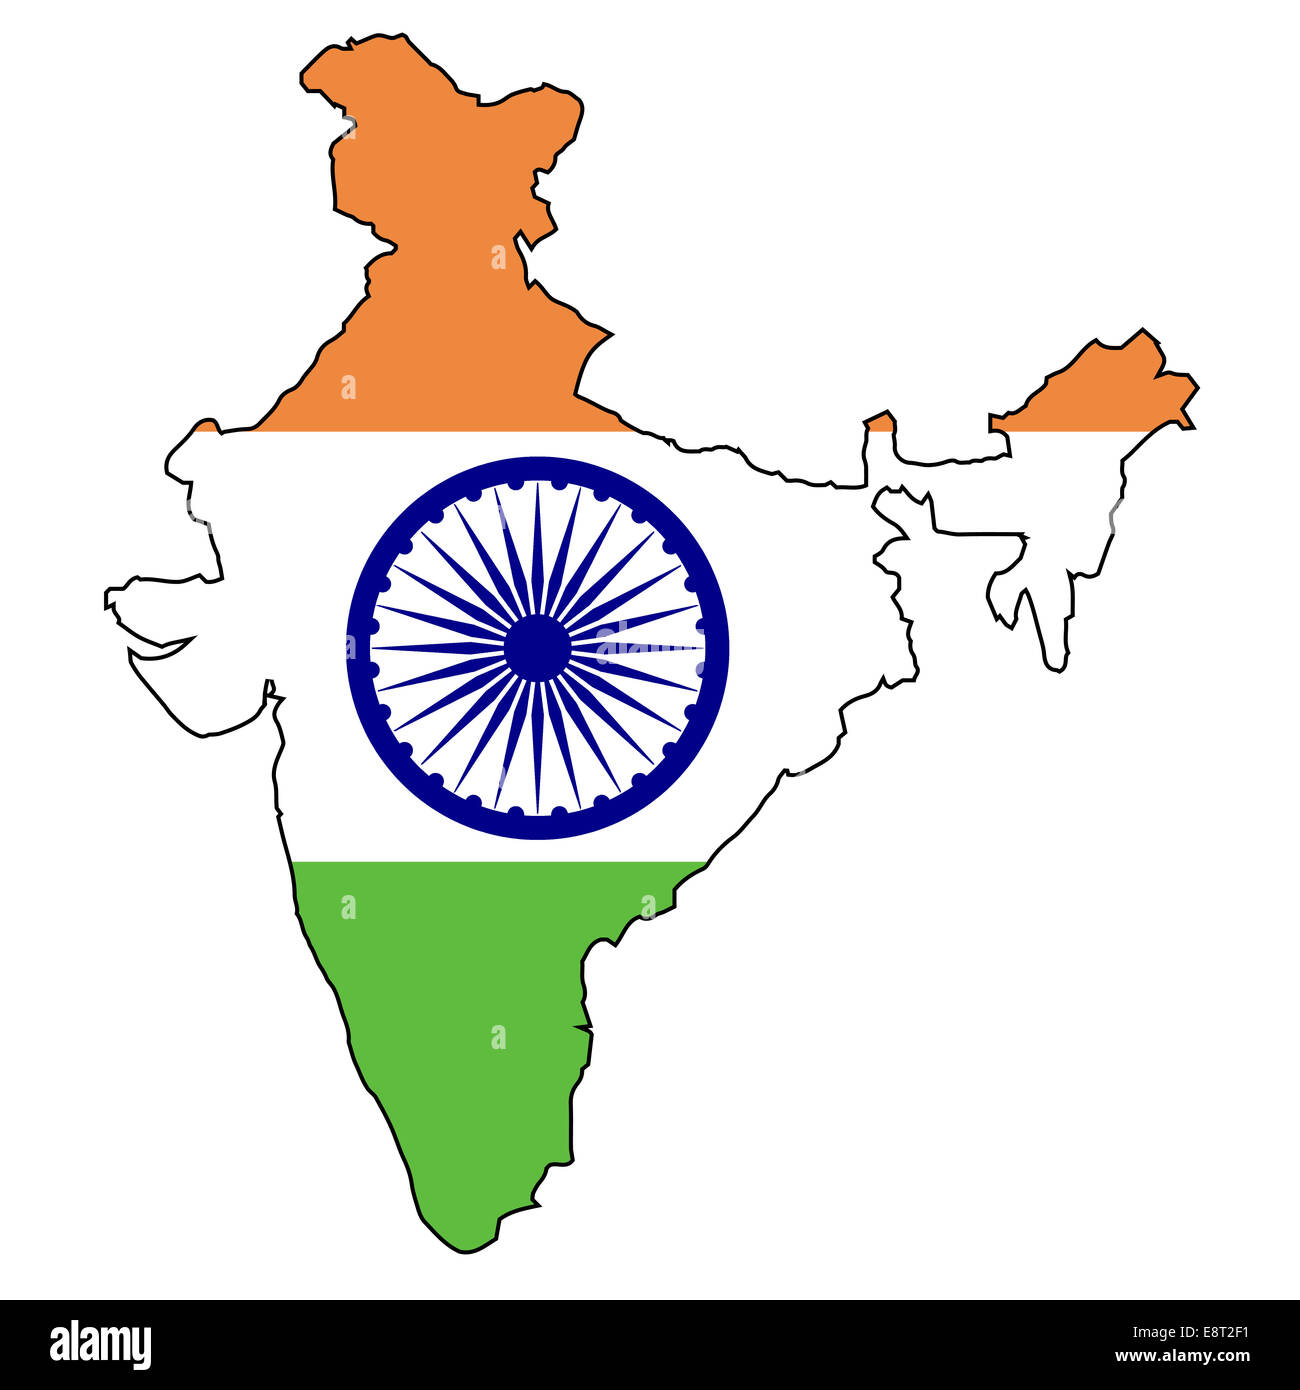 India Map Outline Cut Out Stock Images & Pictures - Alamy